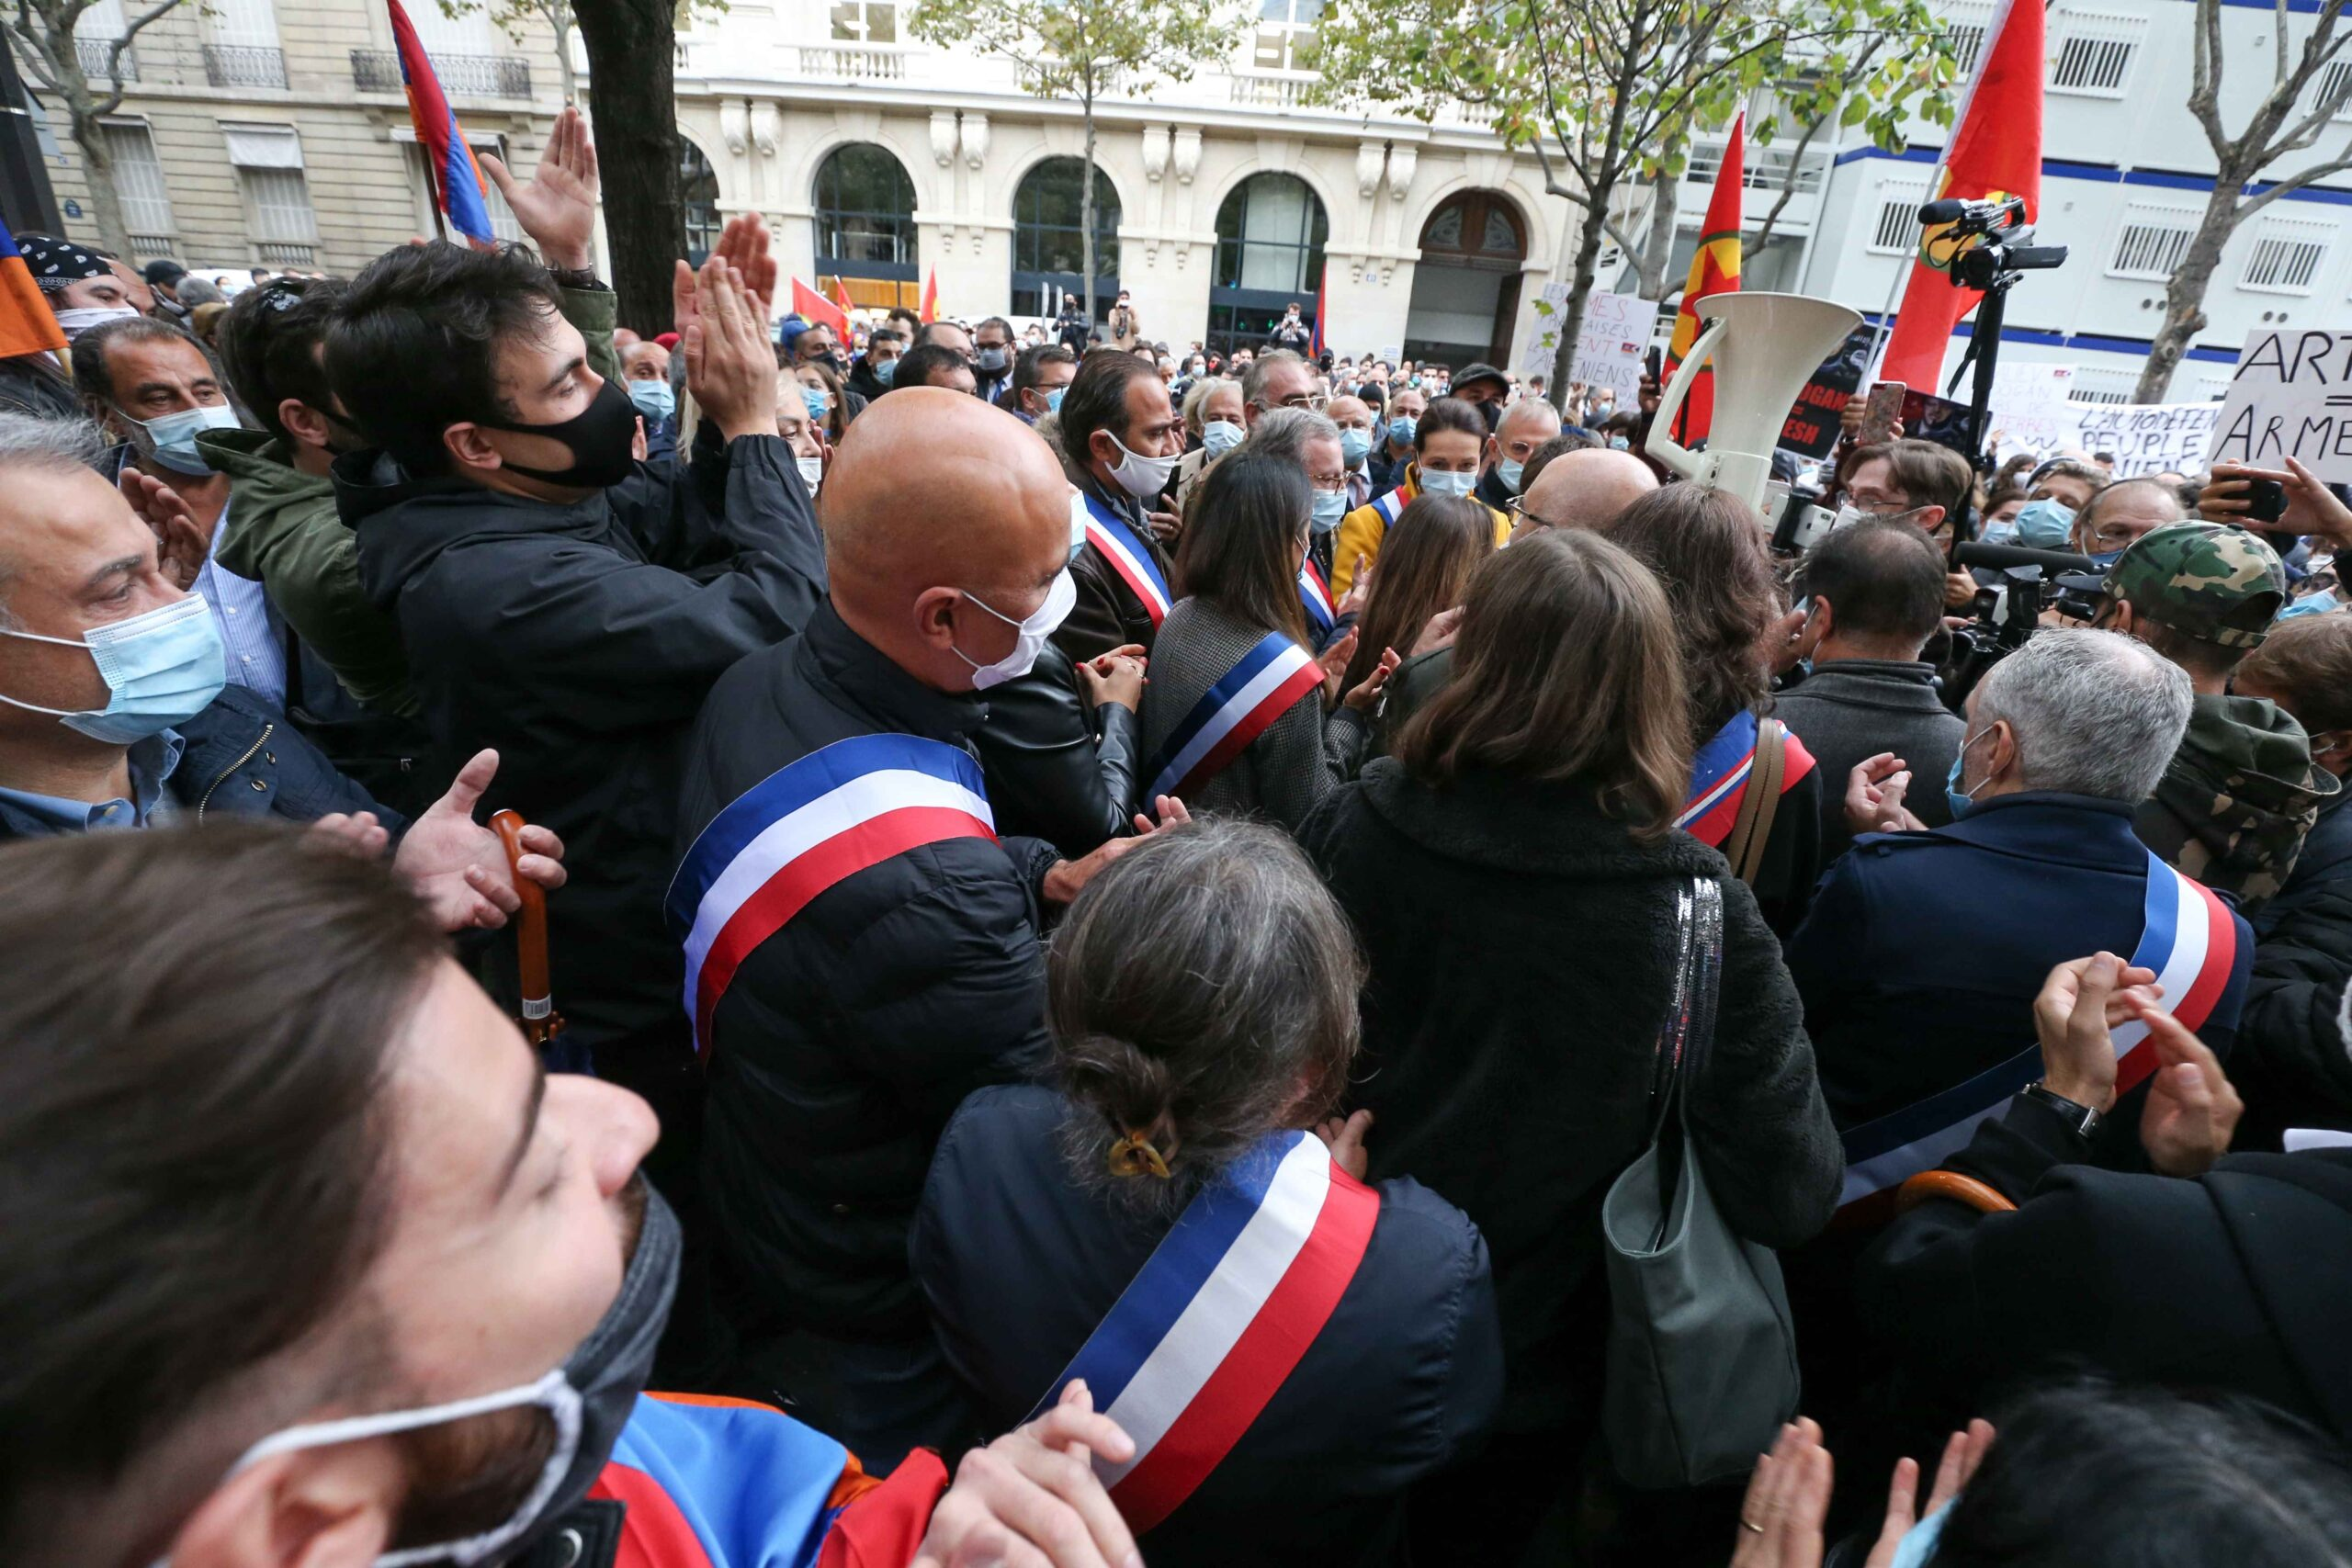 French elected representatives take part in a demonstration of Armenians in front of the Azerbaijan ambassy in Paris, France, on September 29, 2020 against the Azerbayan attacks on Nagorno Karabakh.